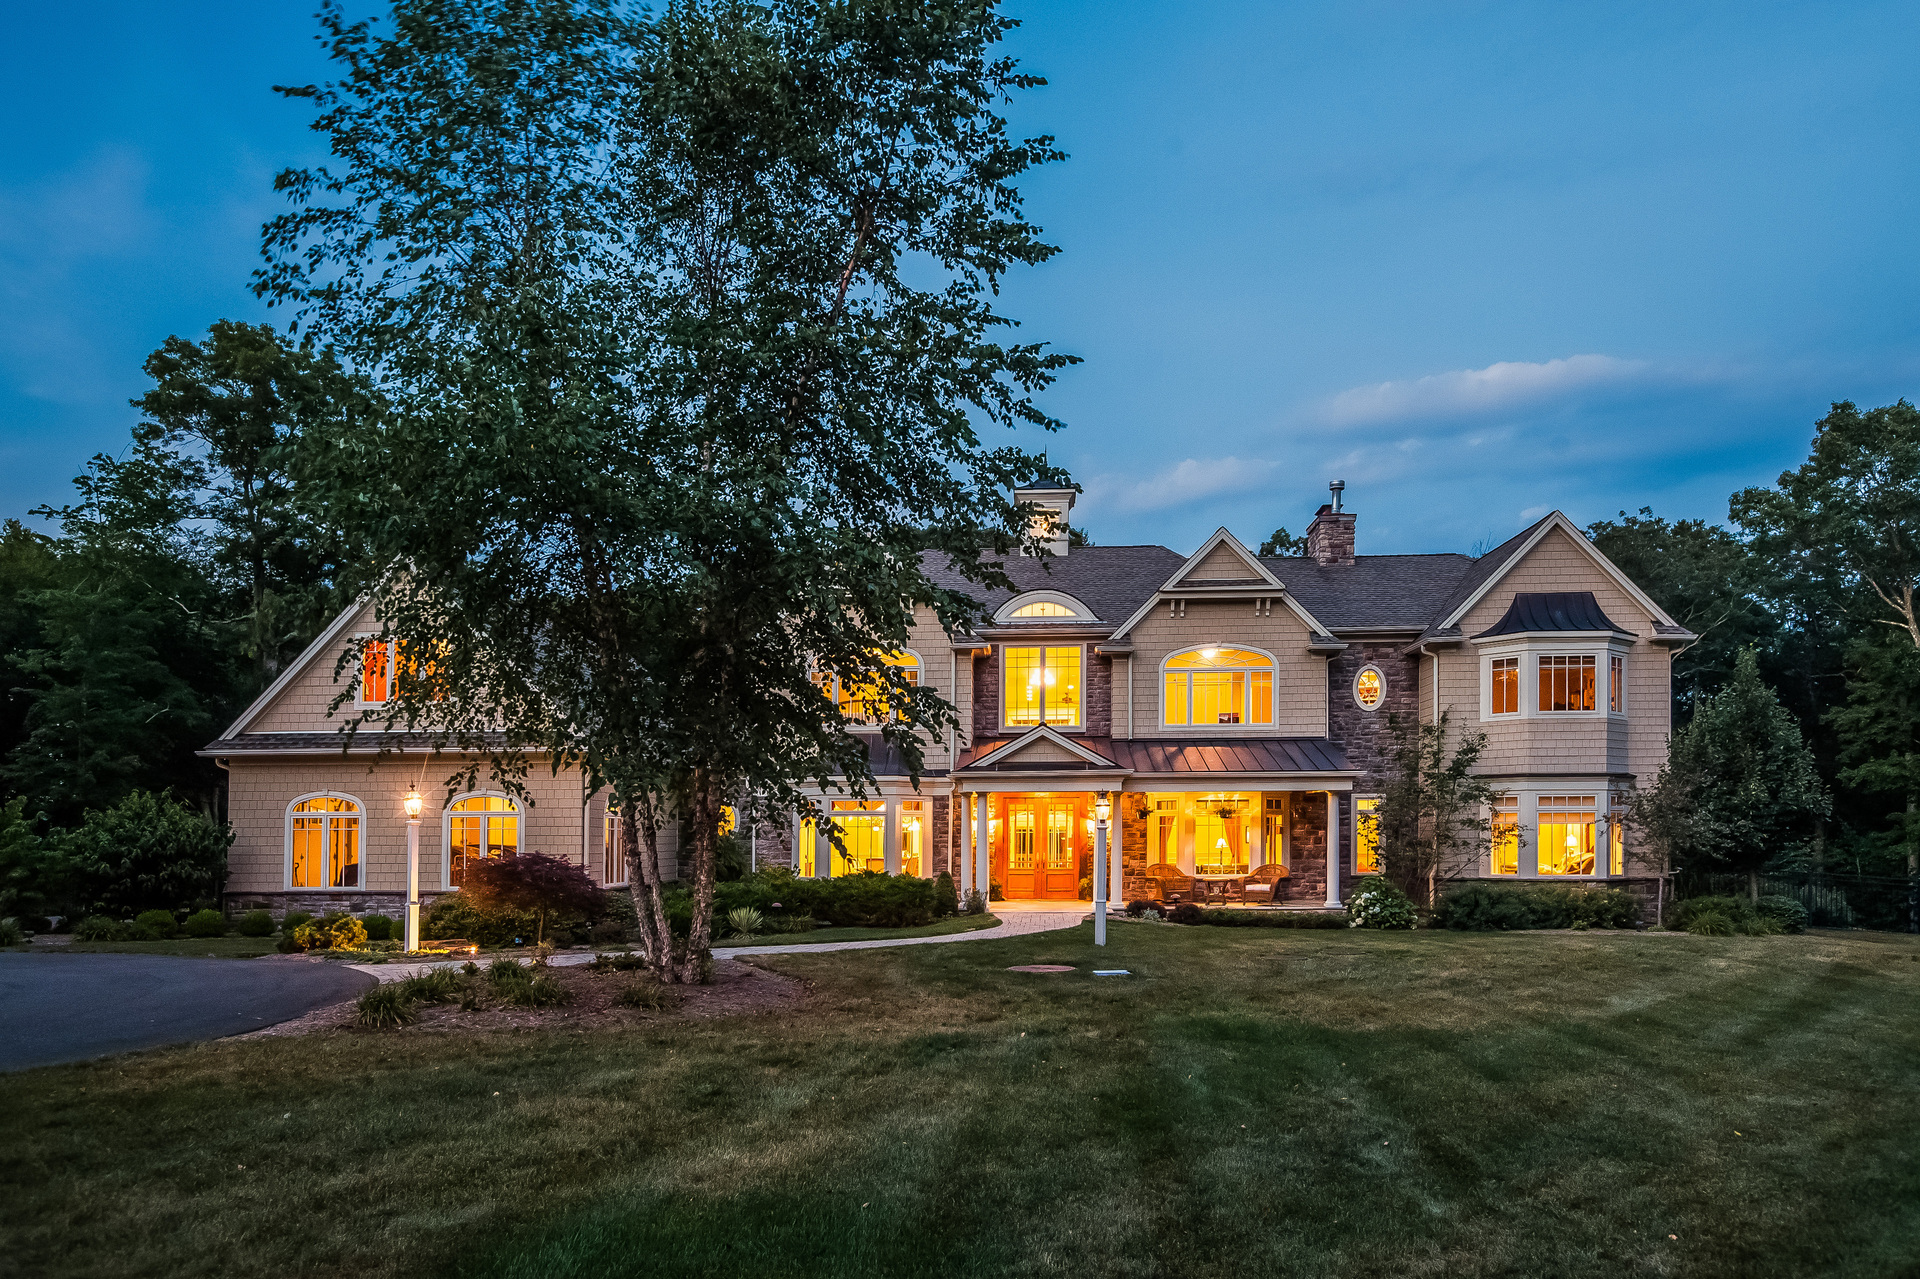 Single Family Home for Sale at Exquisite Custom Built Home on 6+ Acres 91 Half Mile Rd Guilford, Connecticut, 06437 United States